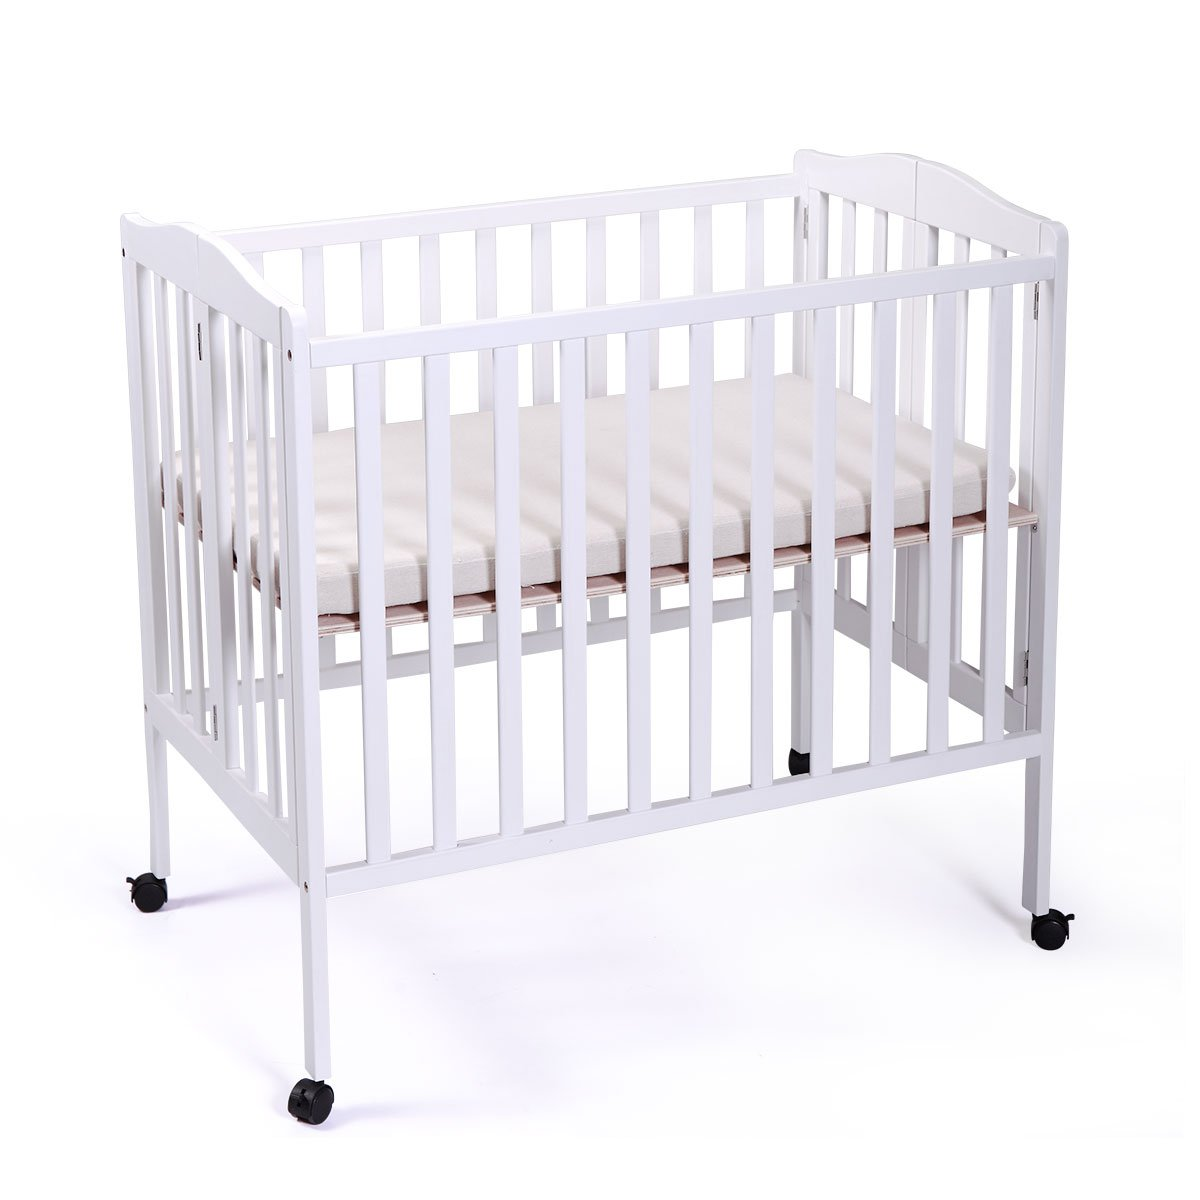 LAZYMOON Portable Pine Wood Baby Crib Toddler Bed Nursery Furniture Safety White